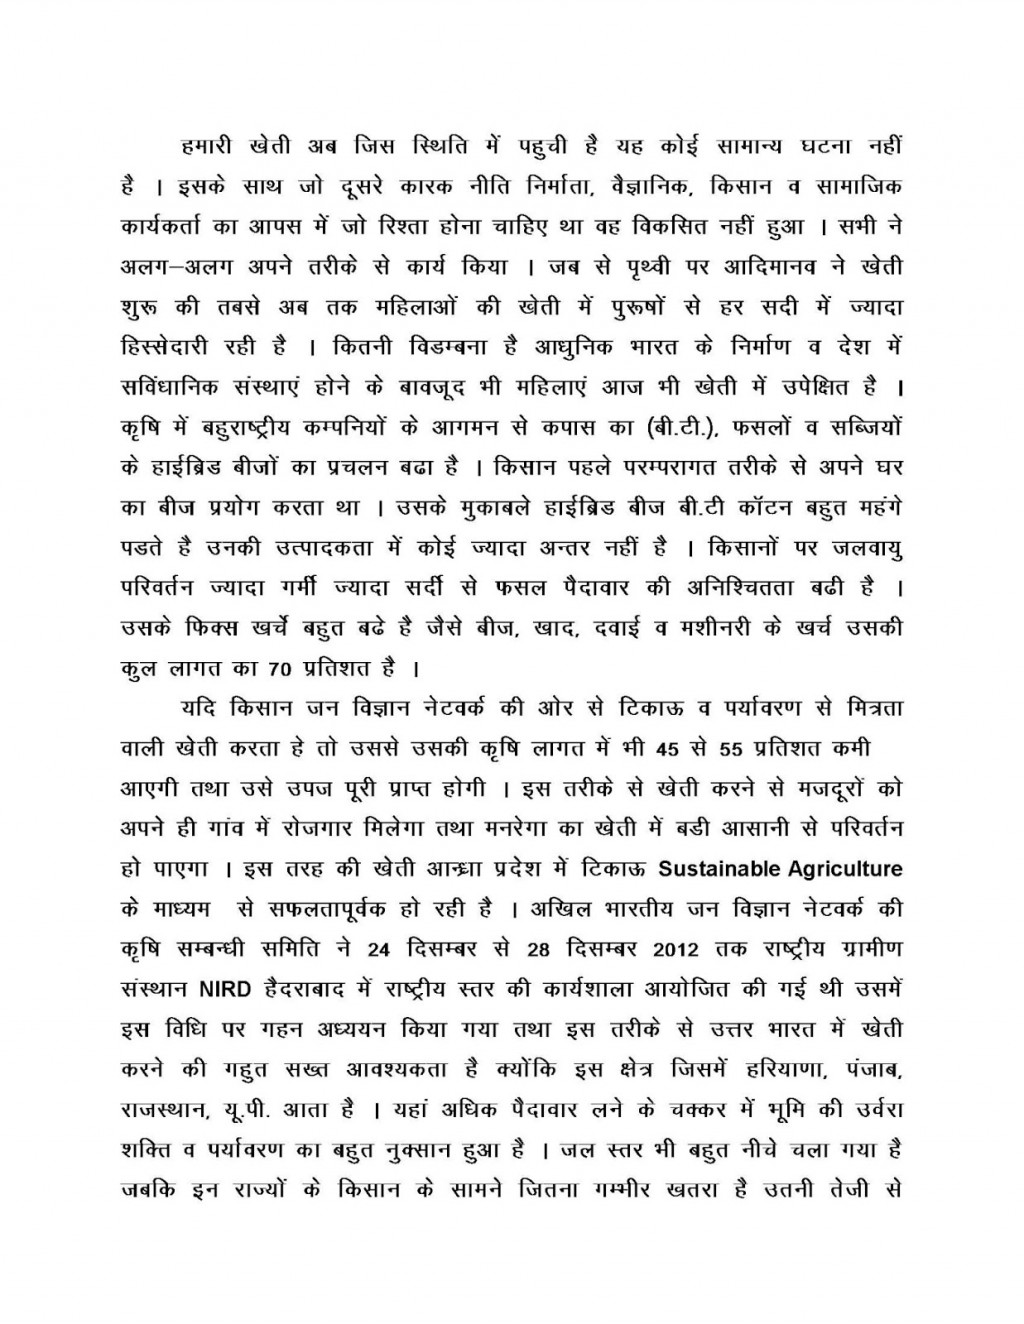 007 Essay Example Hindiworkdr Rajindersingh Page 3 Gender Equality In The Wondrous Workplace Examples Of Inequality Argumentative Outline Large